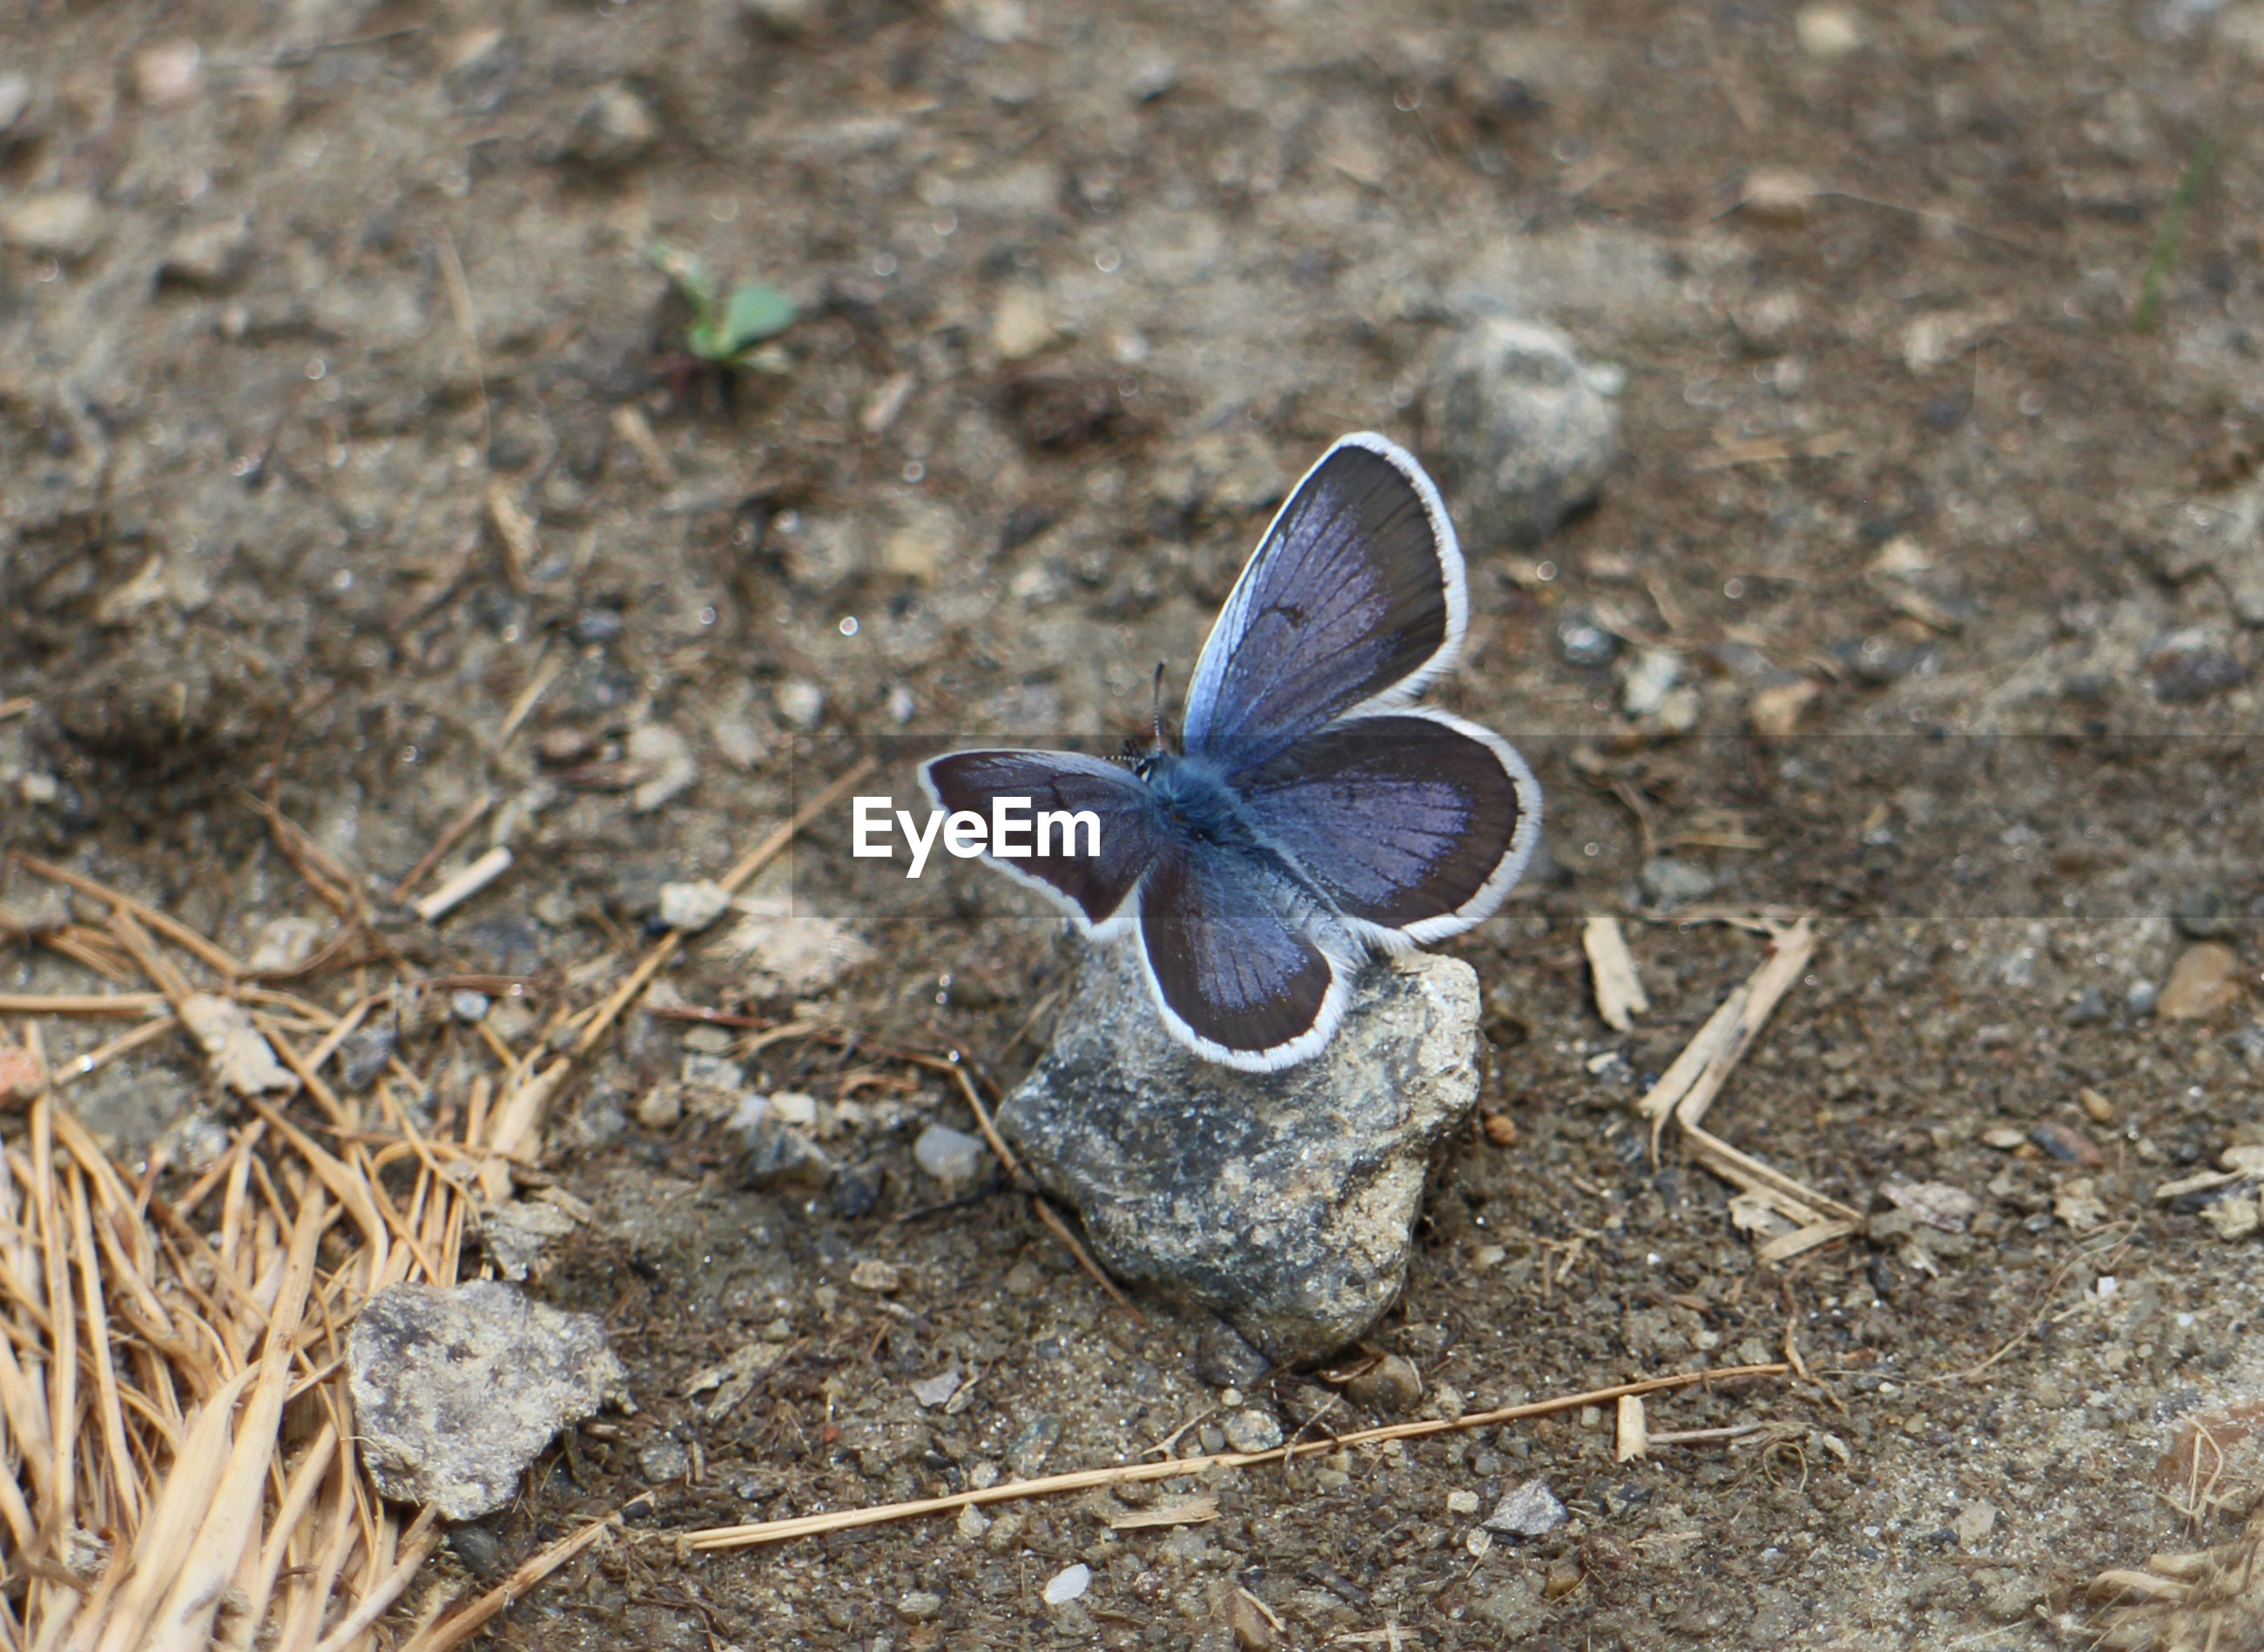 HIGH ANGLE VIEW OF BUTTERFLY ON THE GROUND